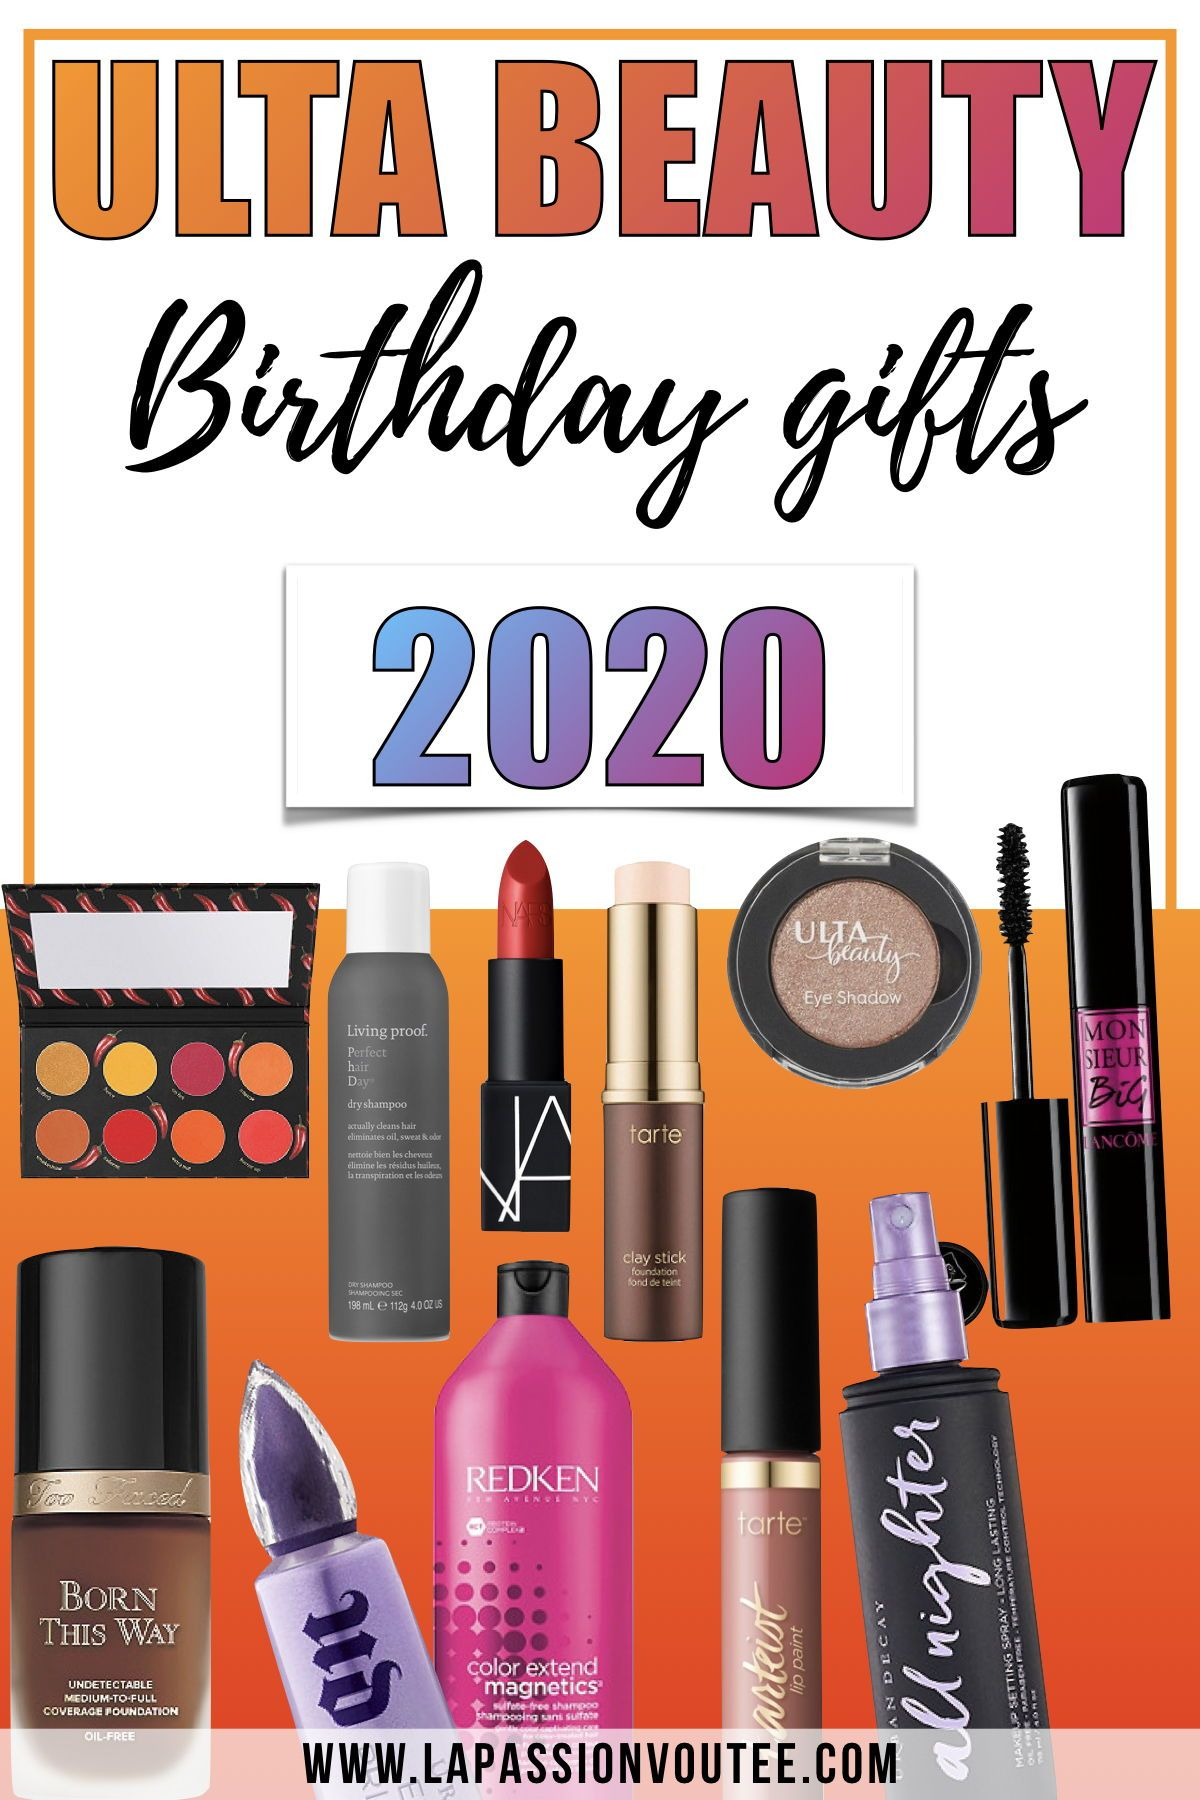 Best FREE Ulta Birthday Gift 2020 March Bliss Micro Magic